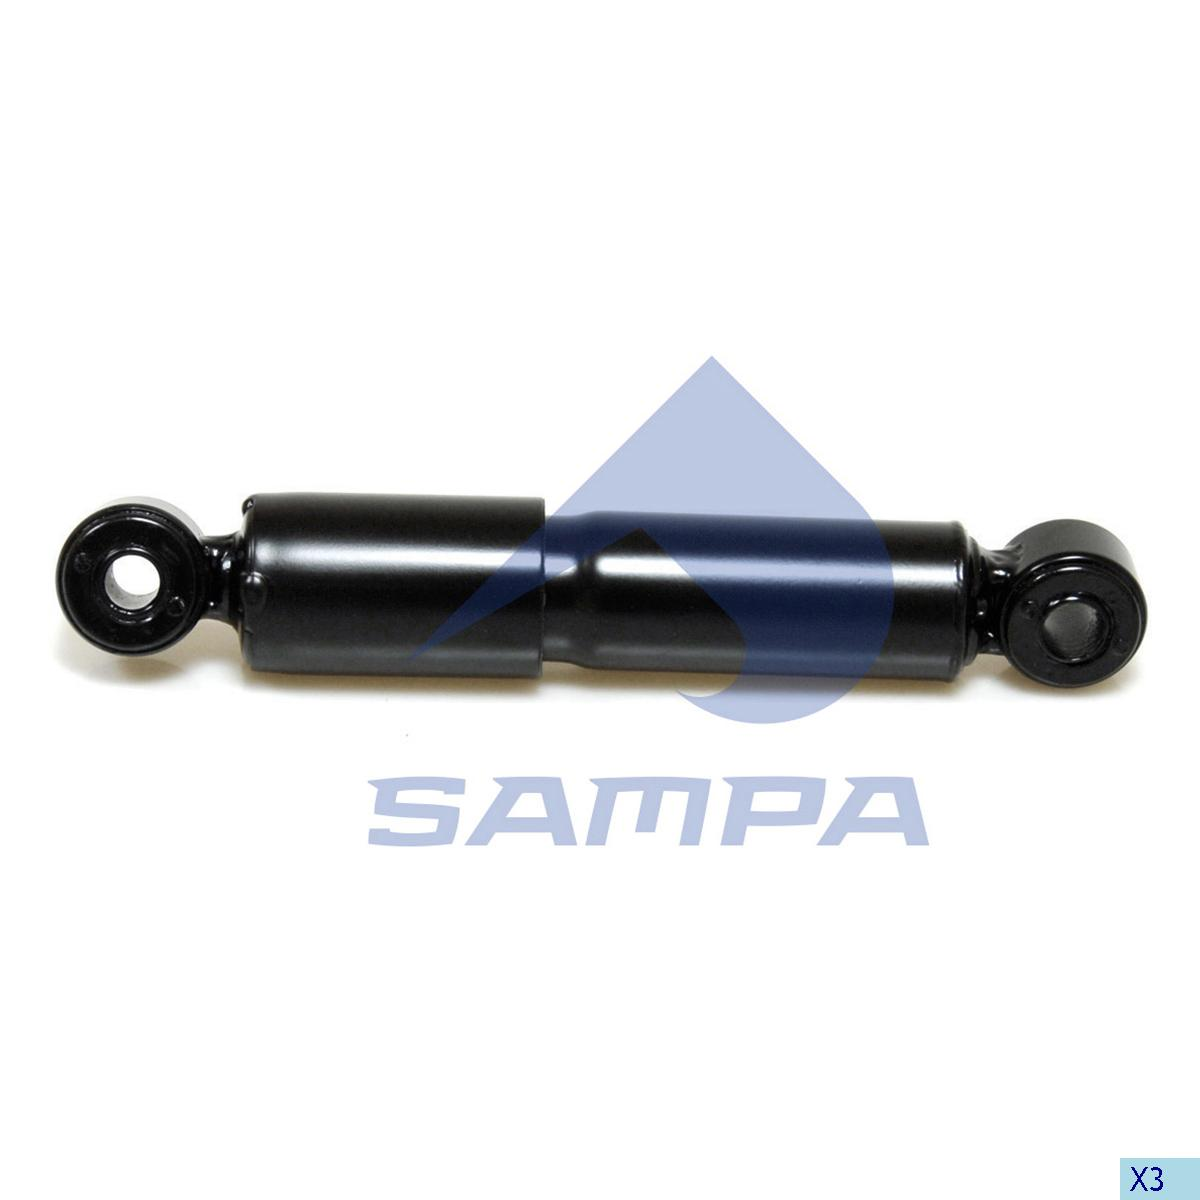 Shock Absorber, Cab, Volvo, Cab